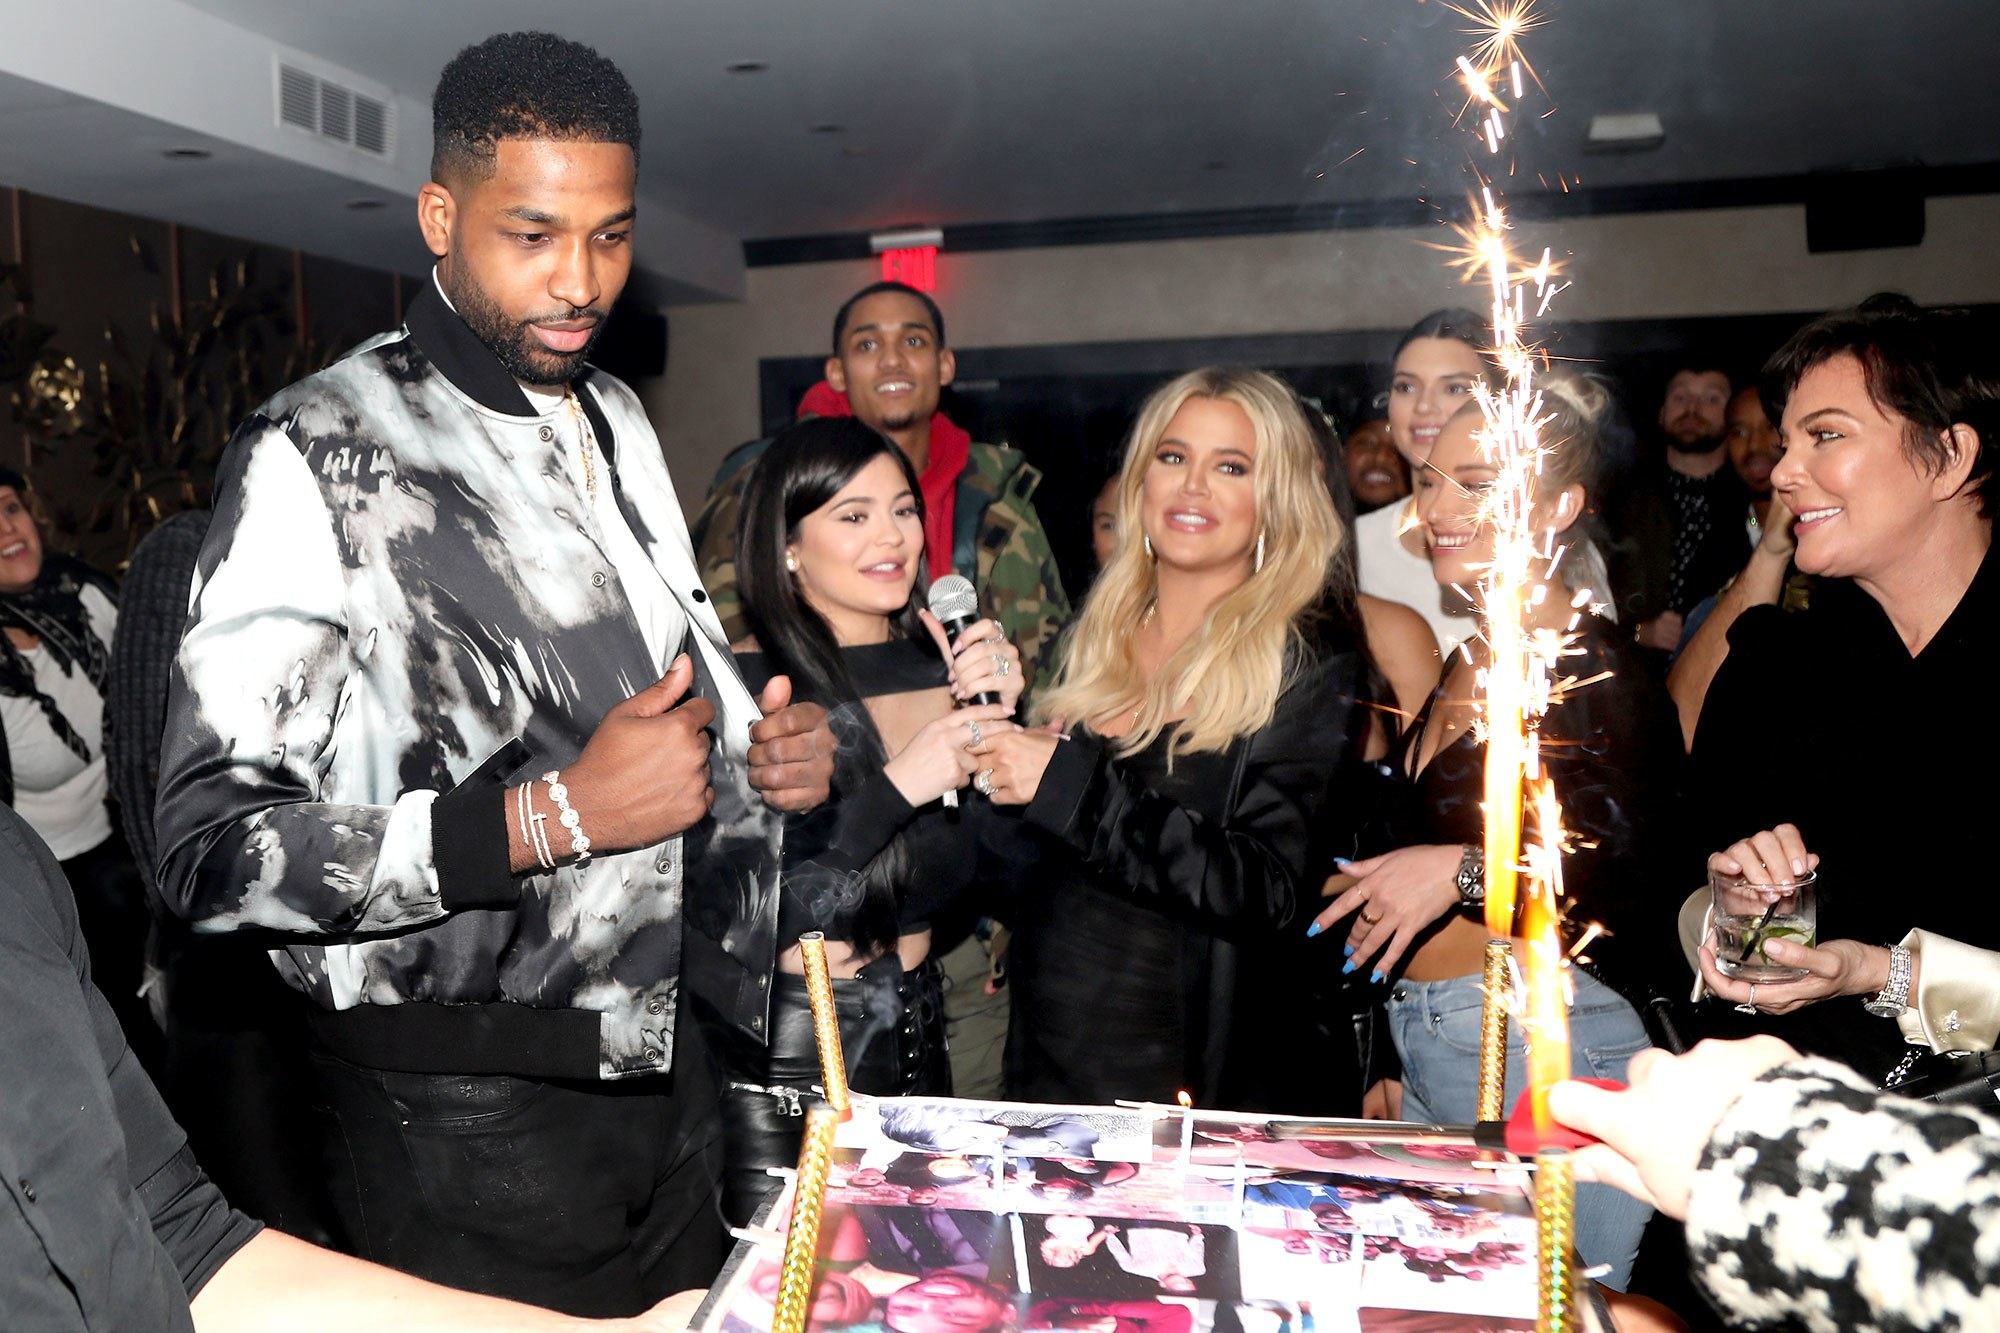 kuwk-khloe-kardashian-reportedly-wants-full-custody-of-daughter-true-heres-why-shes-yet-to-pursue-it